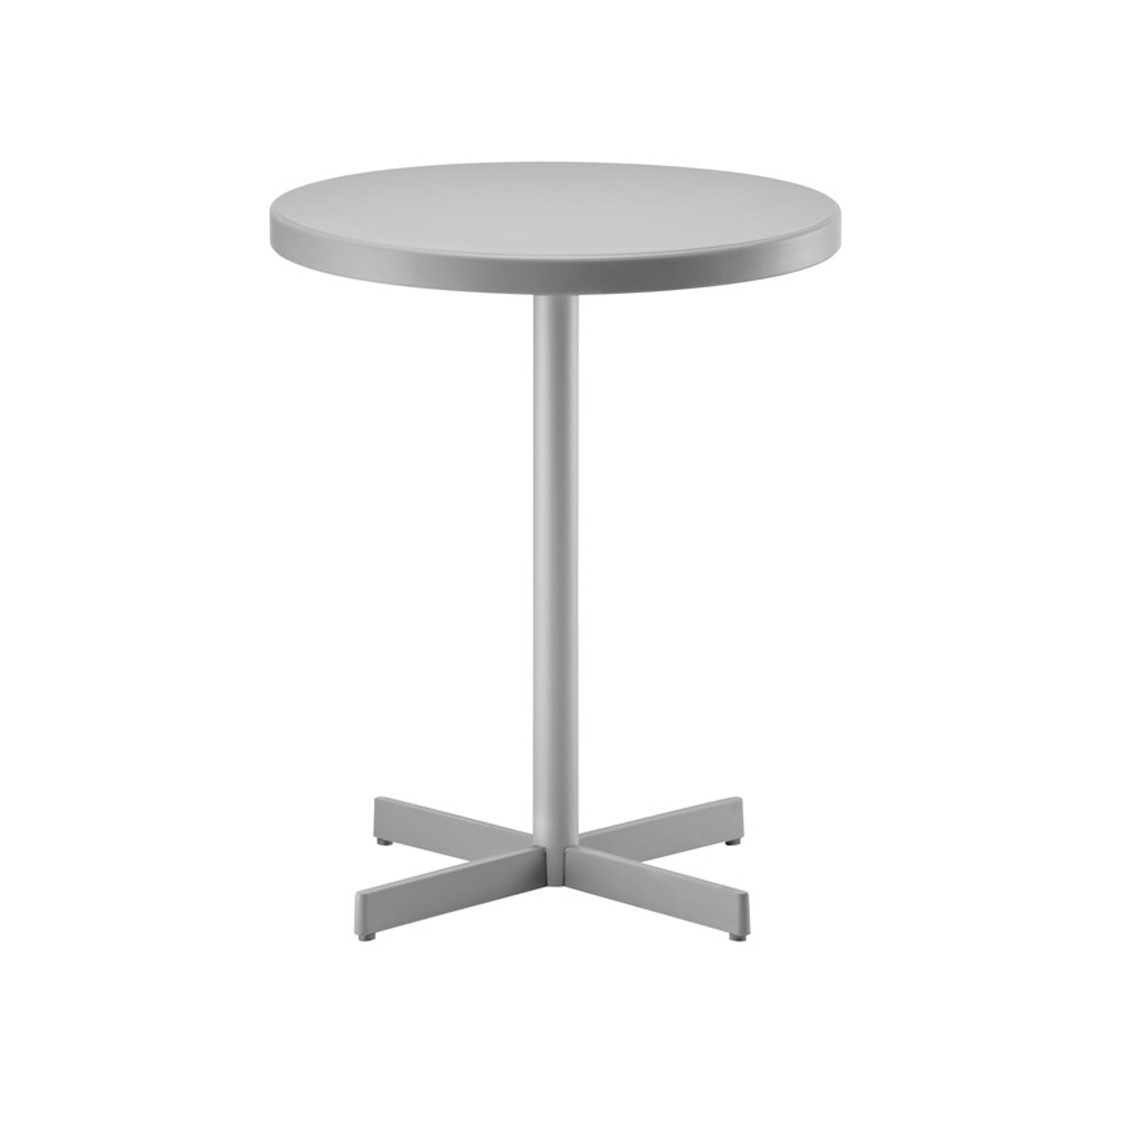 Plastic X Table Base Pedrali at DeFrae Contract Furniture